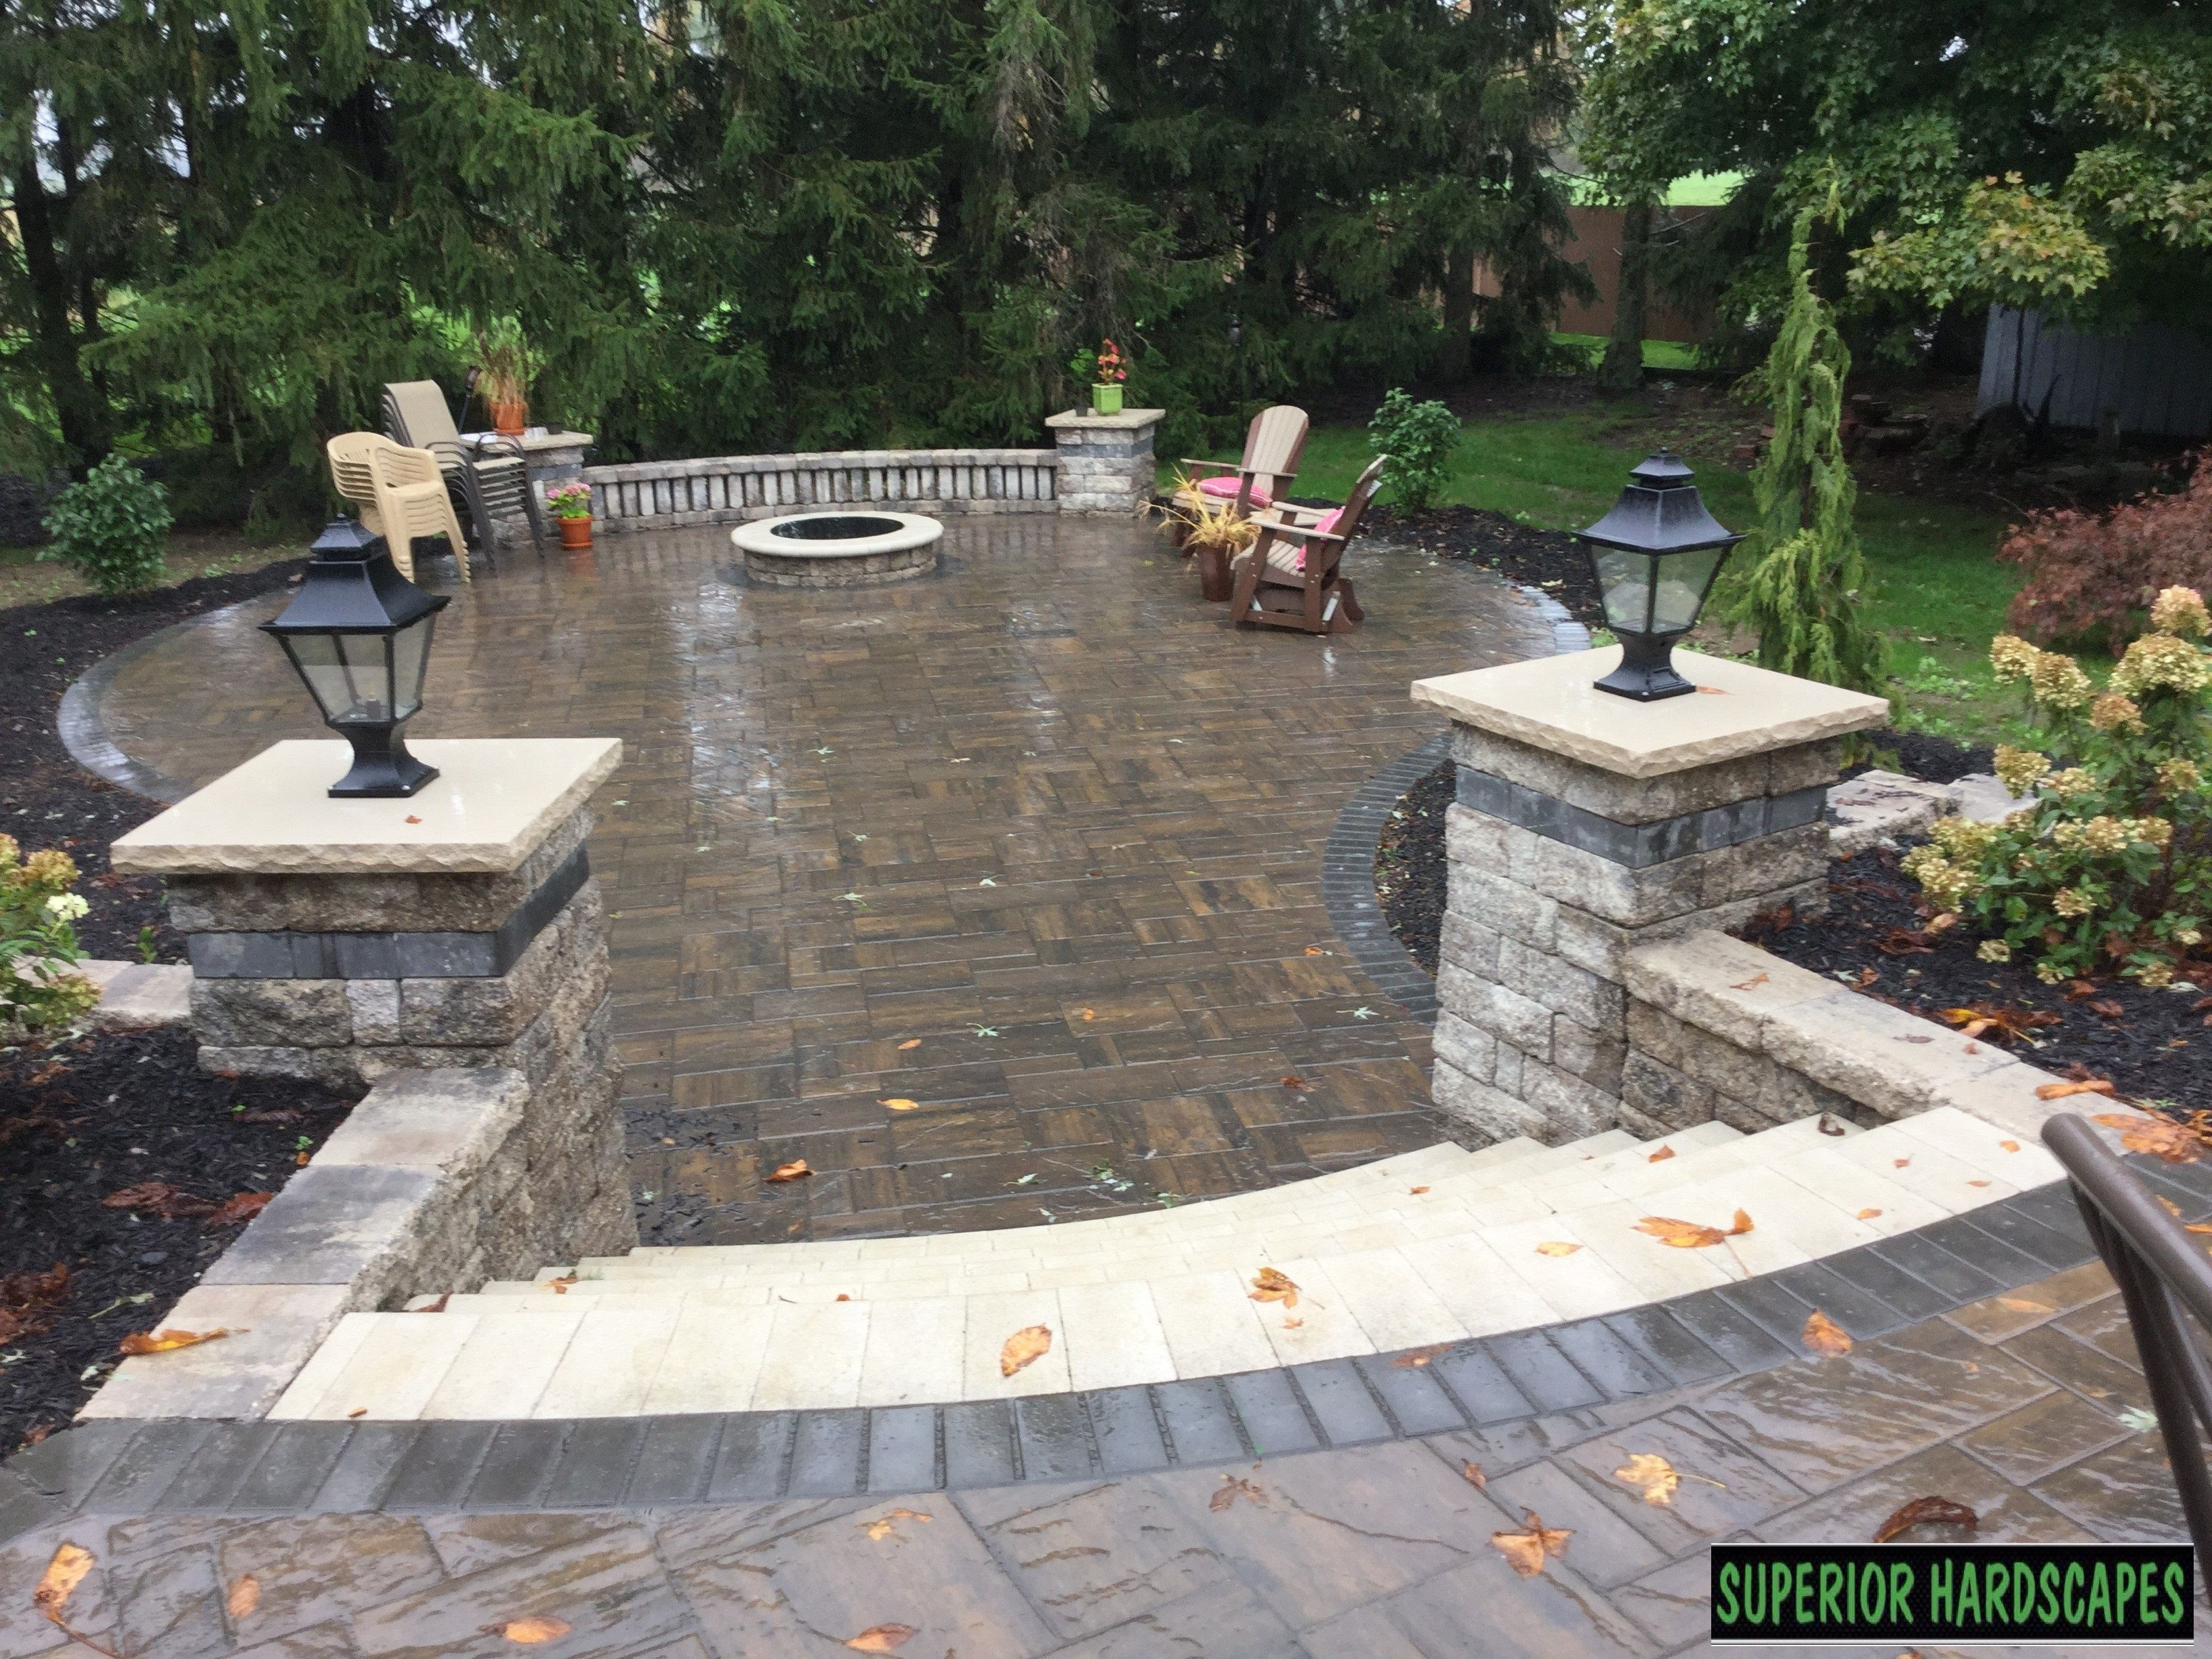 Pin by Kuert Outdoor Living on Patio Hardscapes | Outdoor ... on Kuert Outdoor Living id=65033